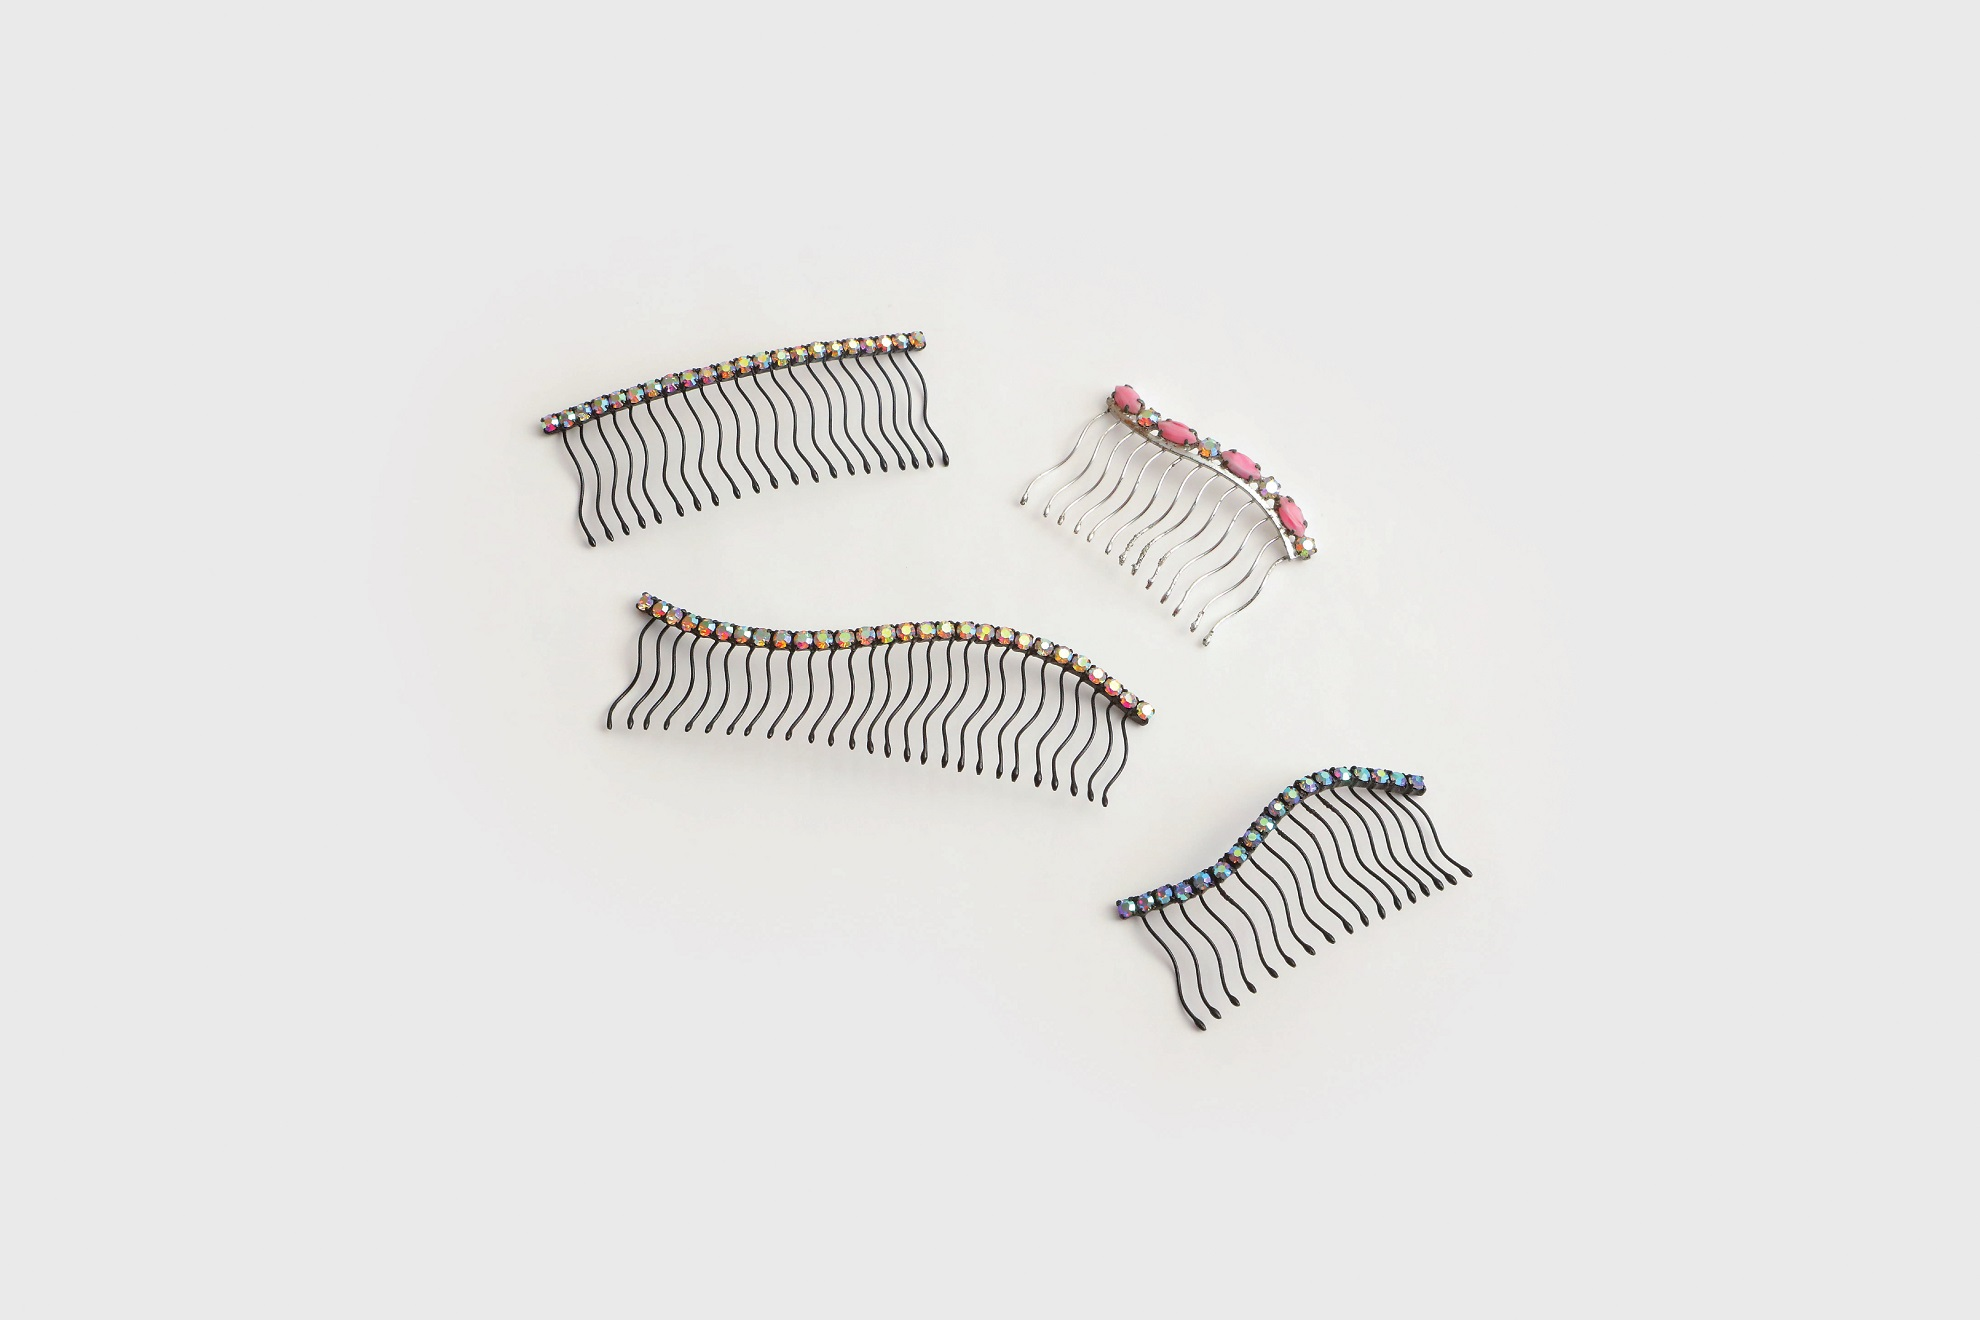 History of accessory creation (combs)